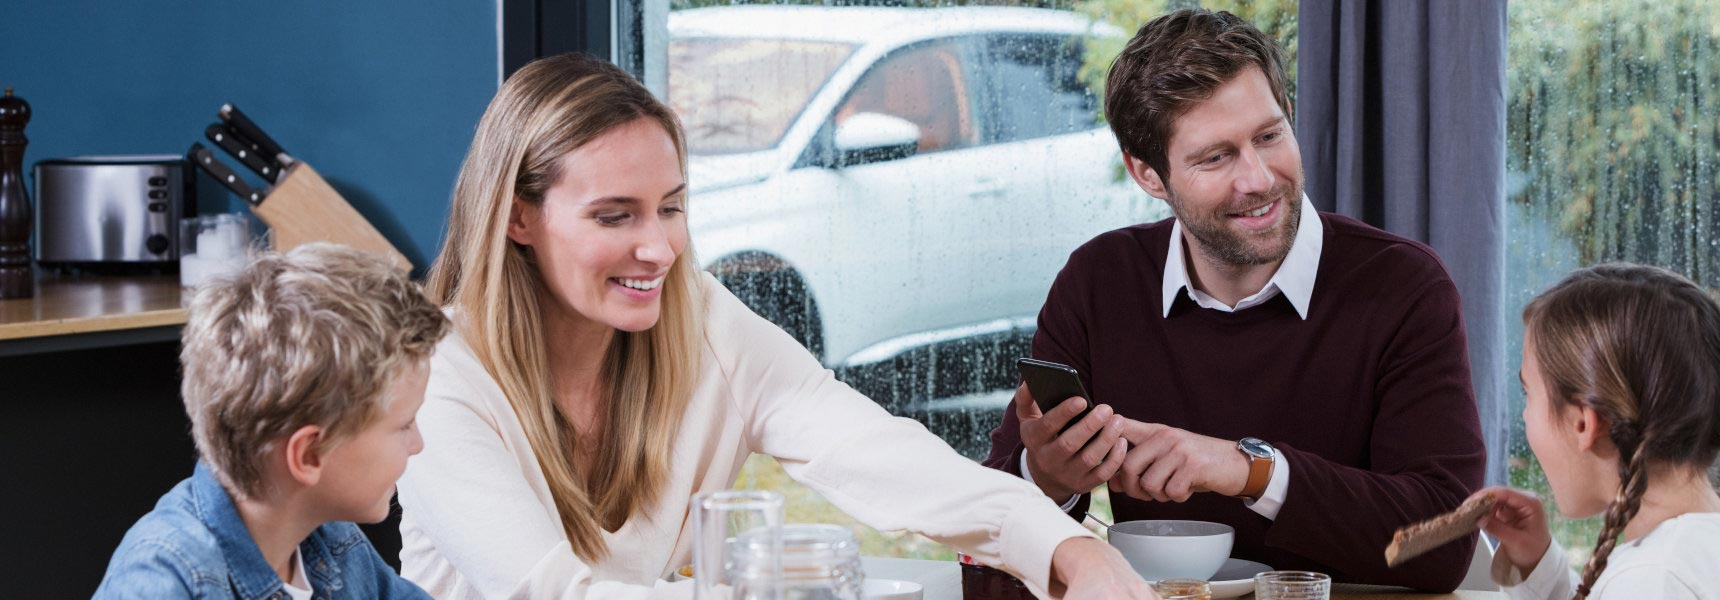 Family sitting cozily at the breakfast table while their car is pre-heated thanks to their Webasto parking heater.